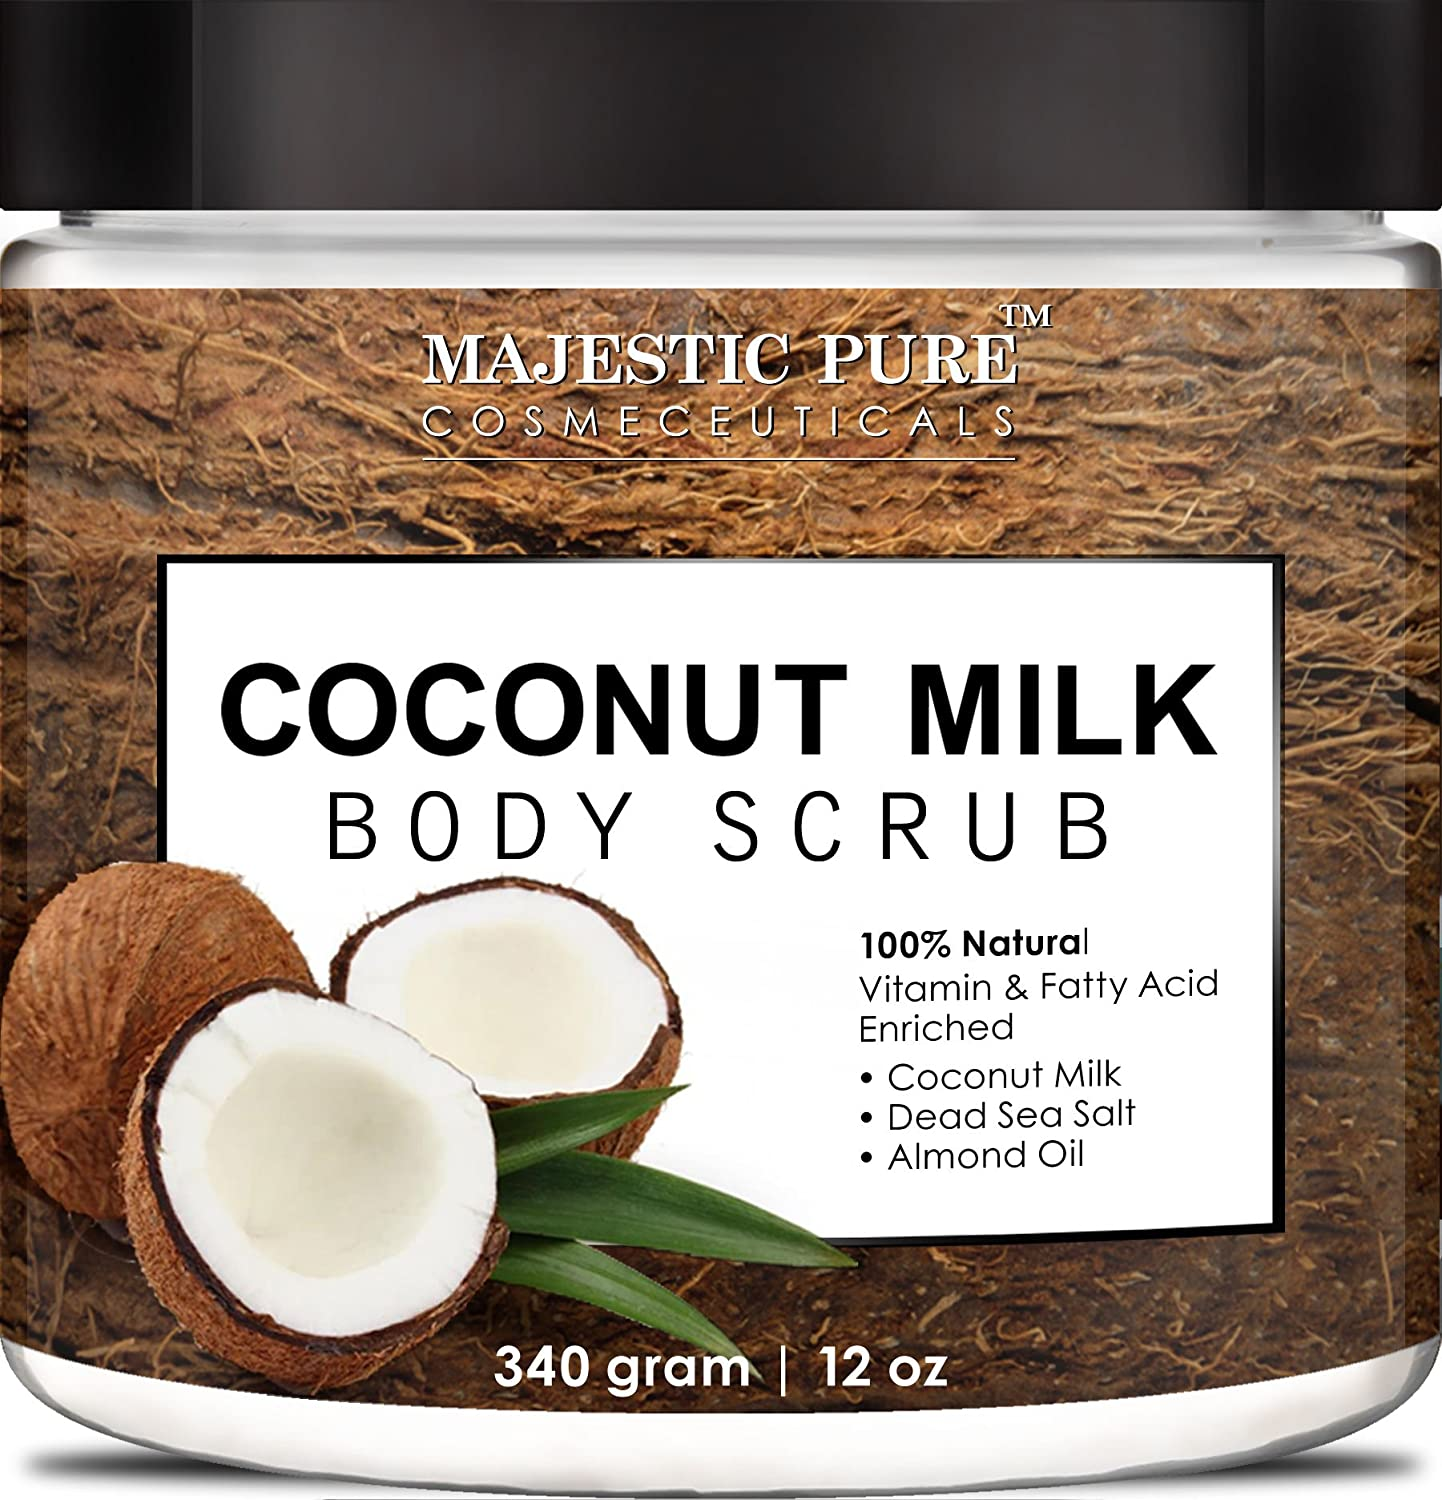 Coconut Milk Body Scrub from Majestic Pure is 100% Natural Scrub - Exfoliates, Moisturizes, Soothes and Promotes Glowing and Radiant Skin - 12 Oz